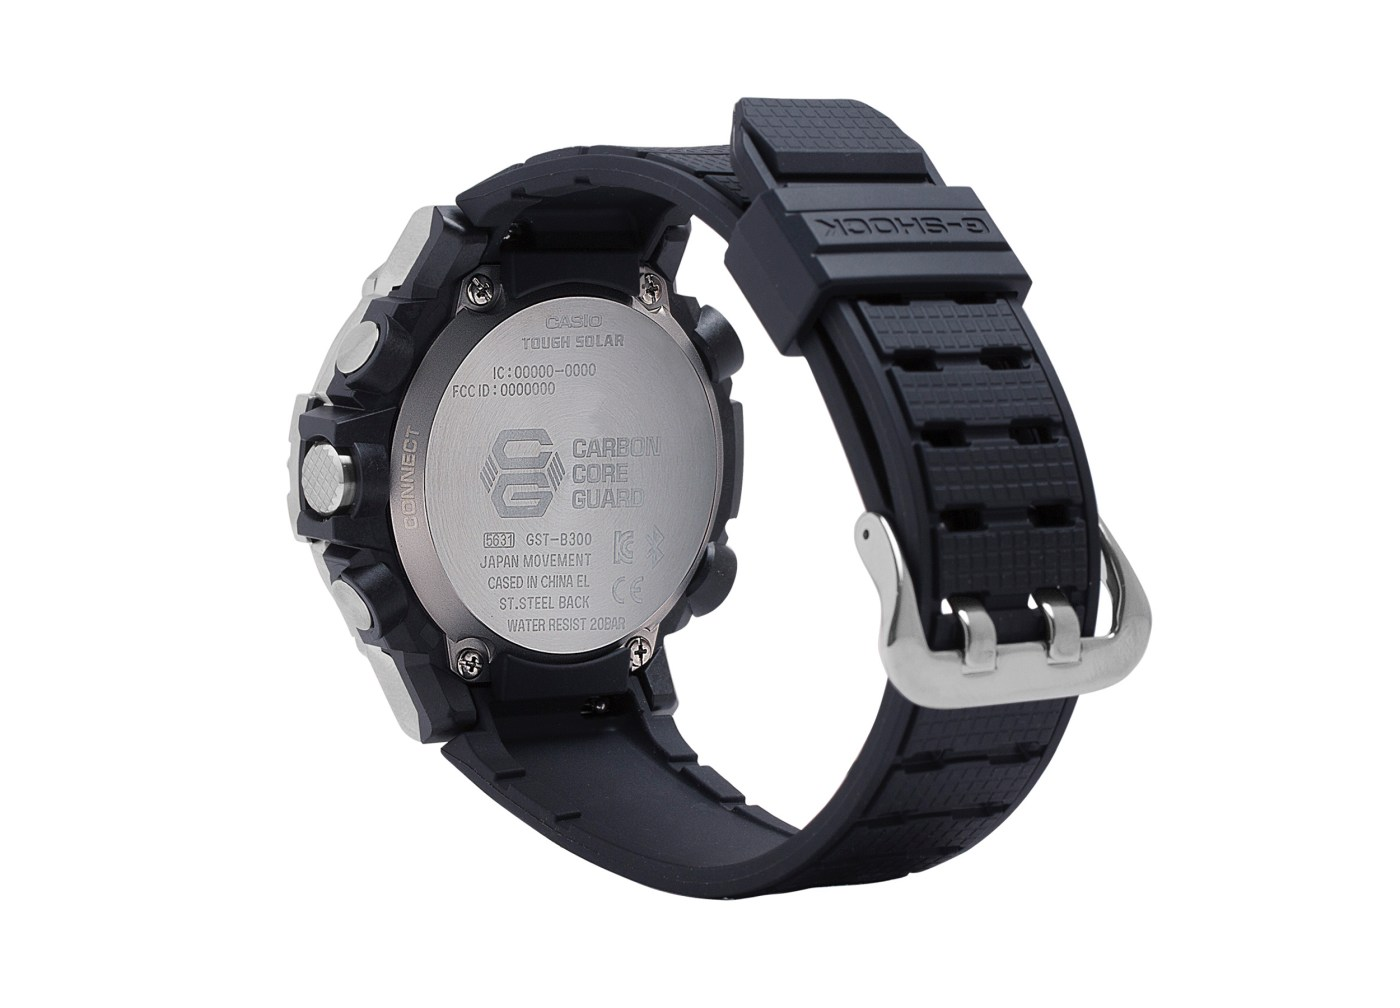 G-Shock G-Steel GSTB300S-1A side caseback view